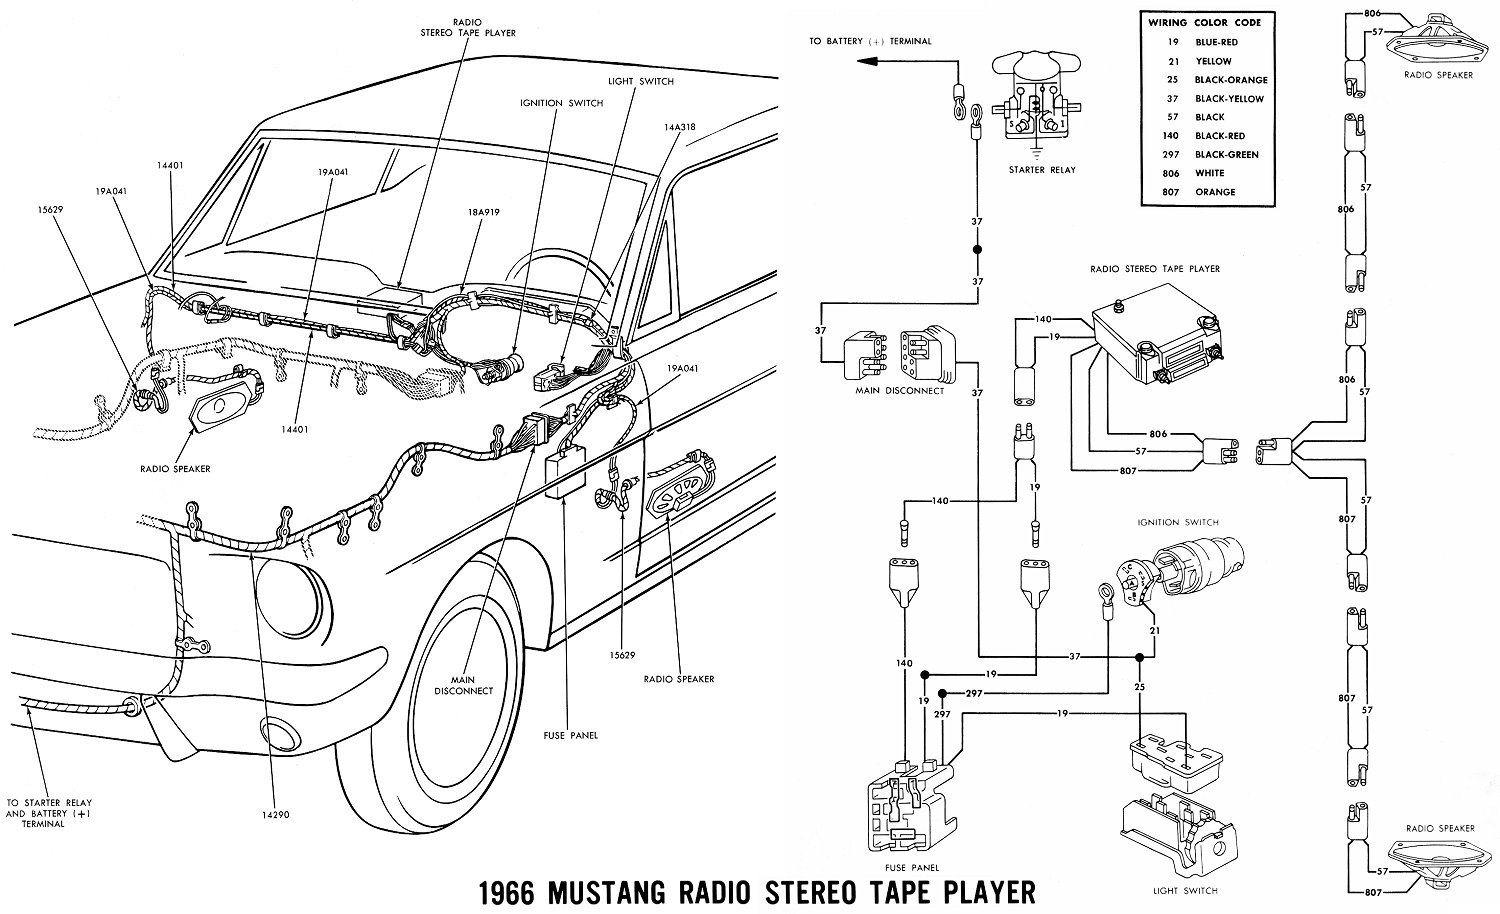 66stereo 1966 mustang wiring diagrams average joe restoration 1966 mustang wiring diagrams at nearapp.co